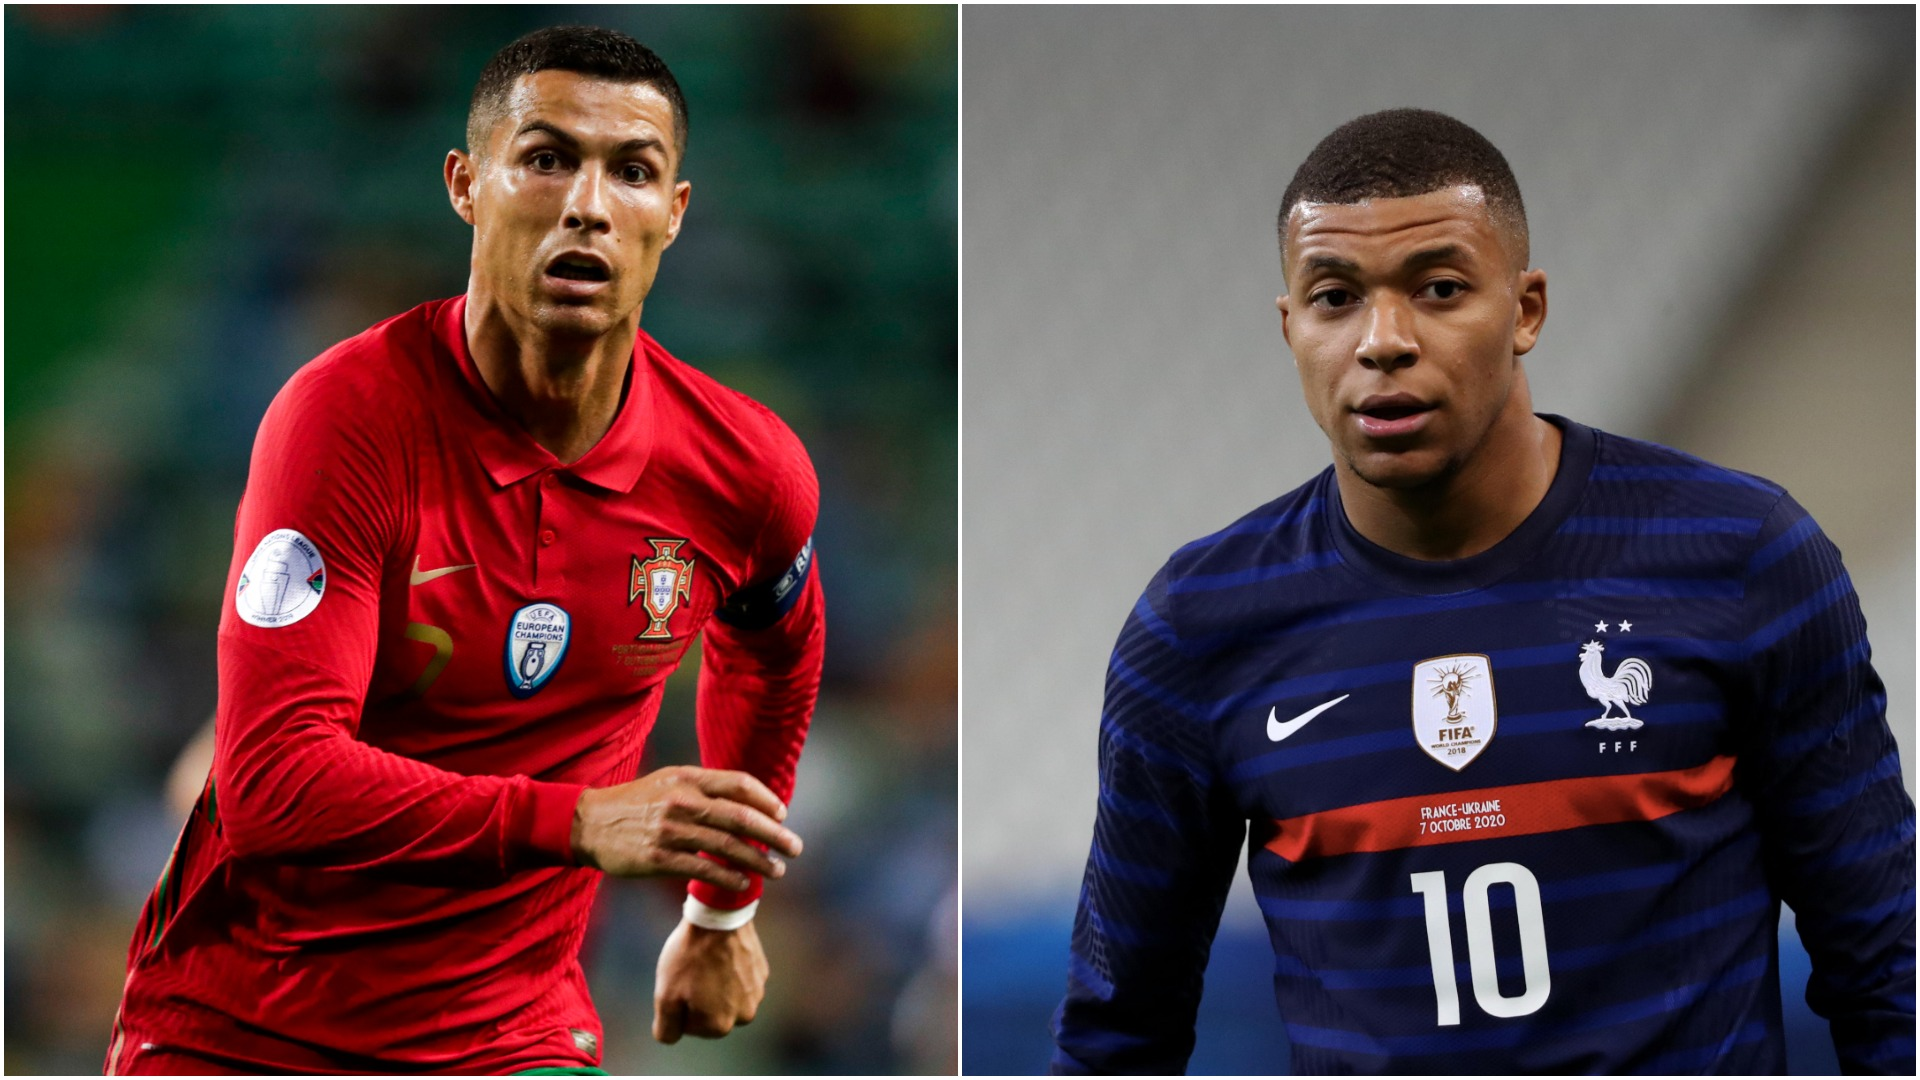 Ronaldo is Mbappe's idol but it's too soon to compare them - France boss Deschamps